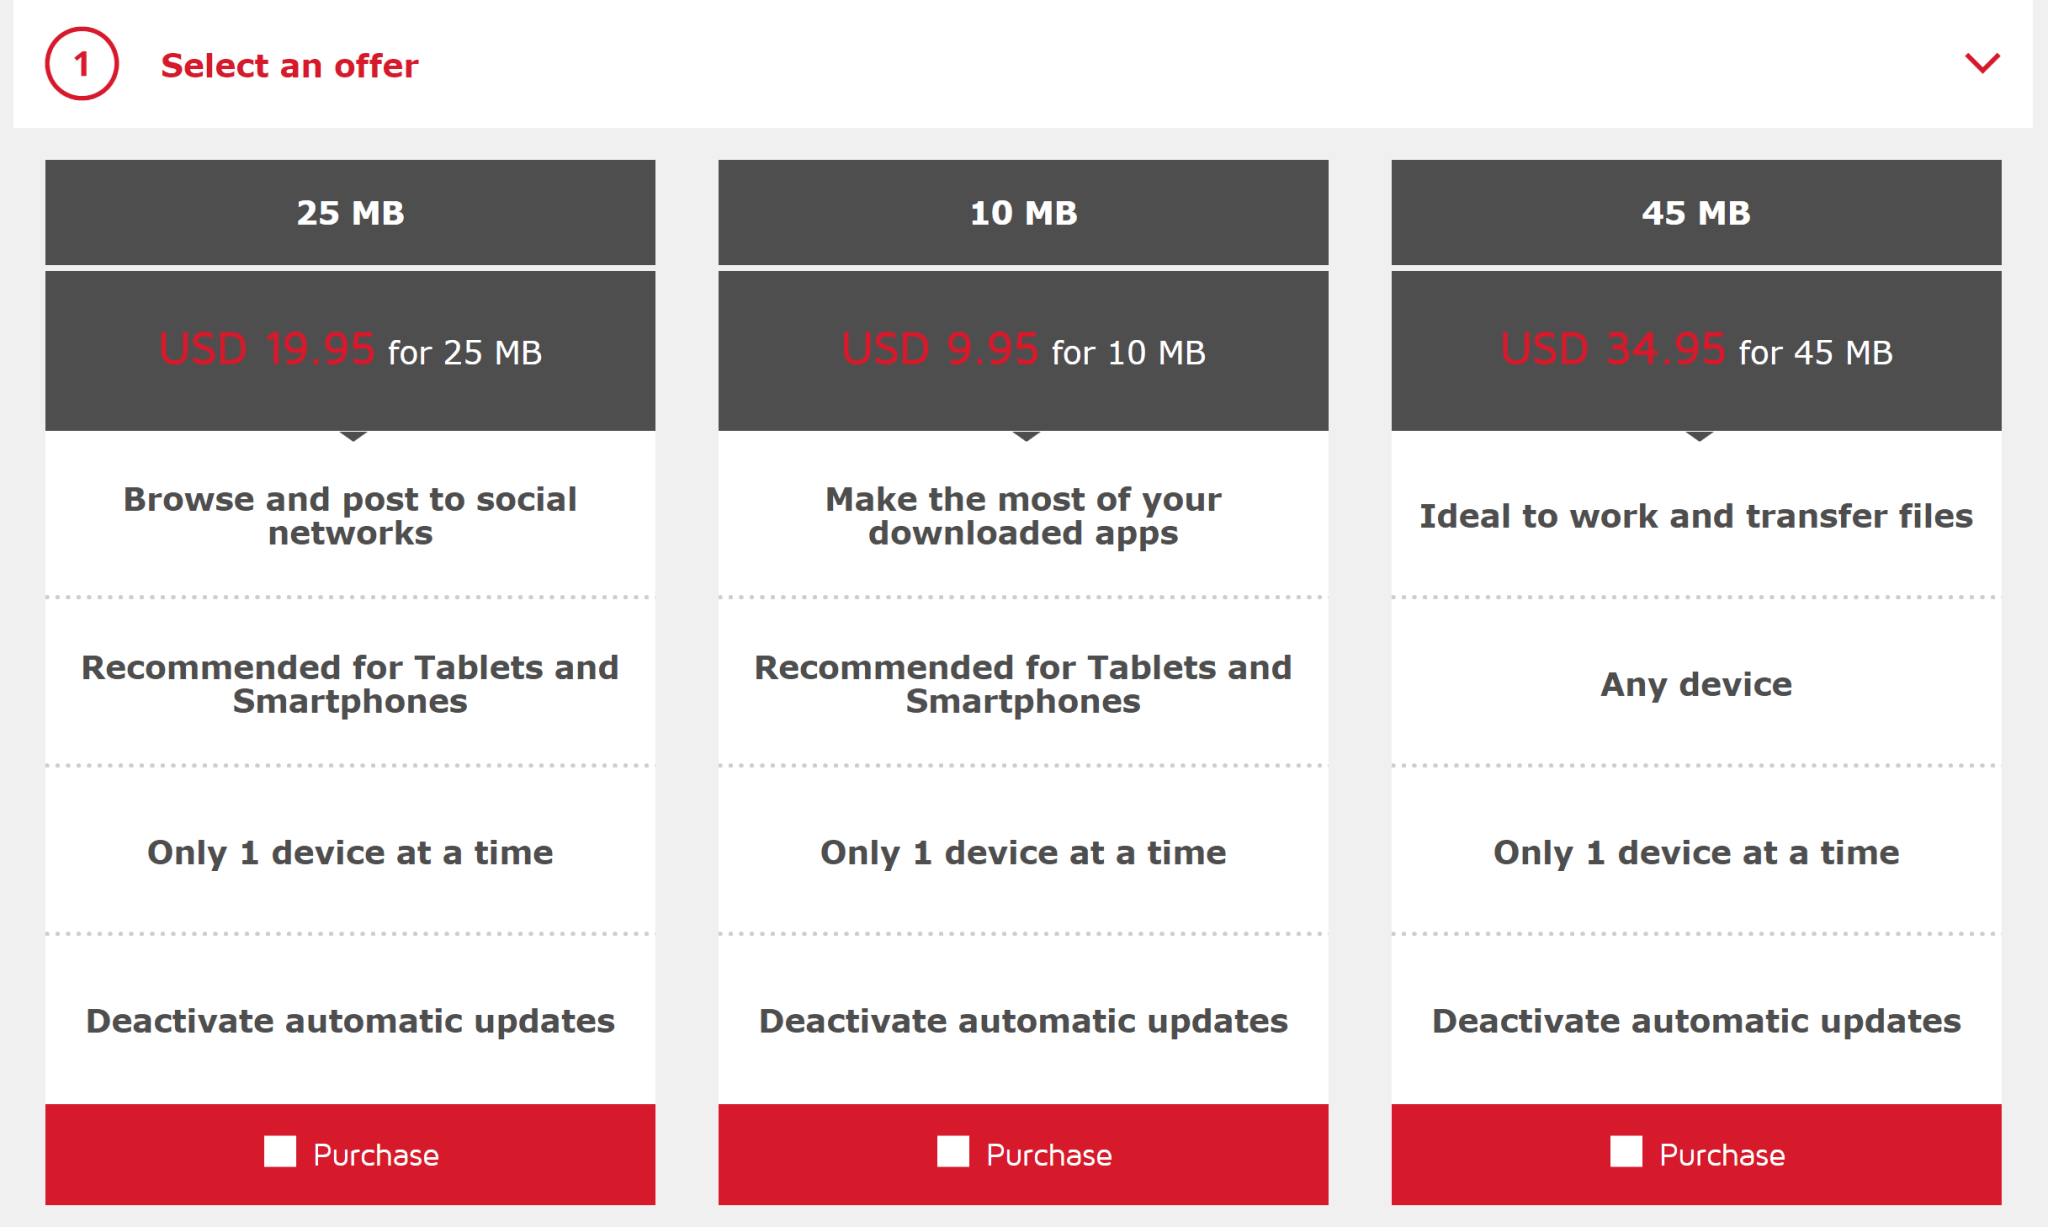 Iberia WiFi pricing other offers